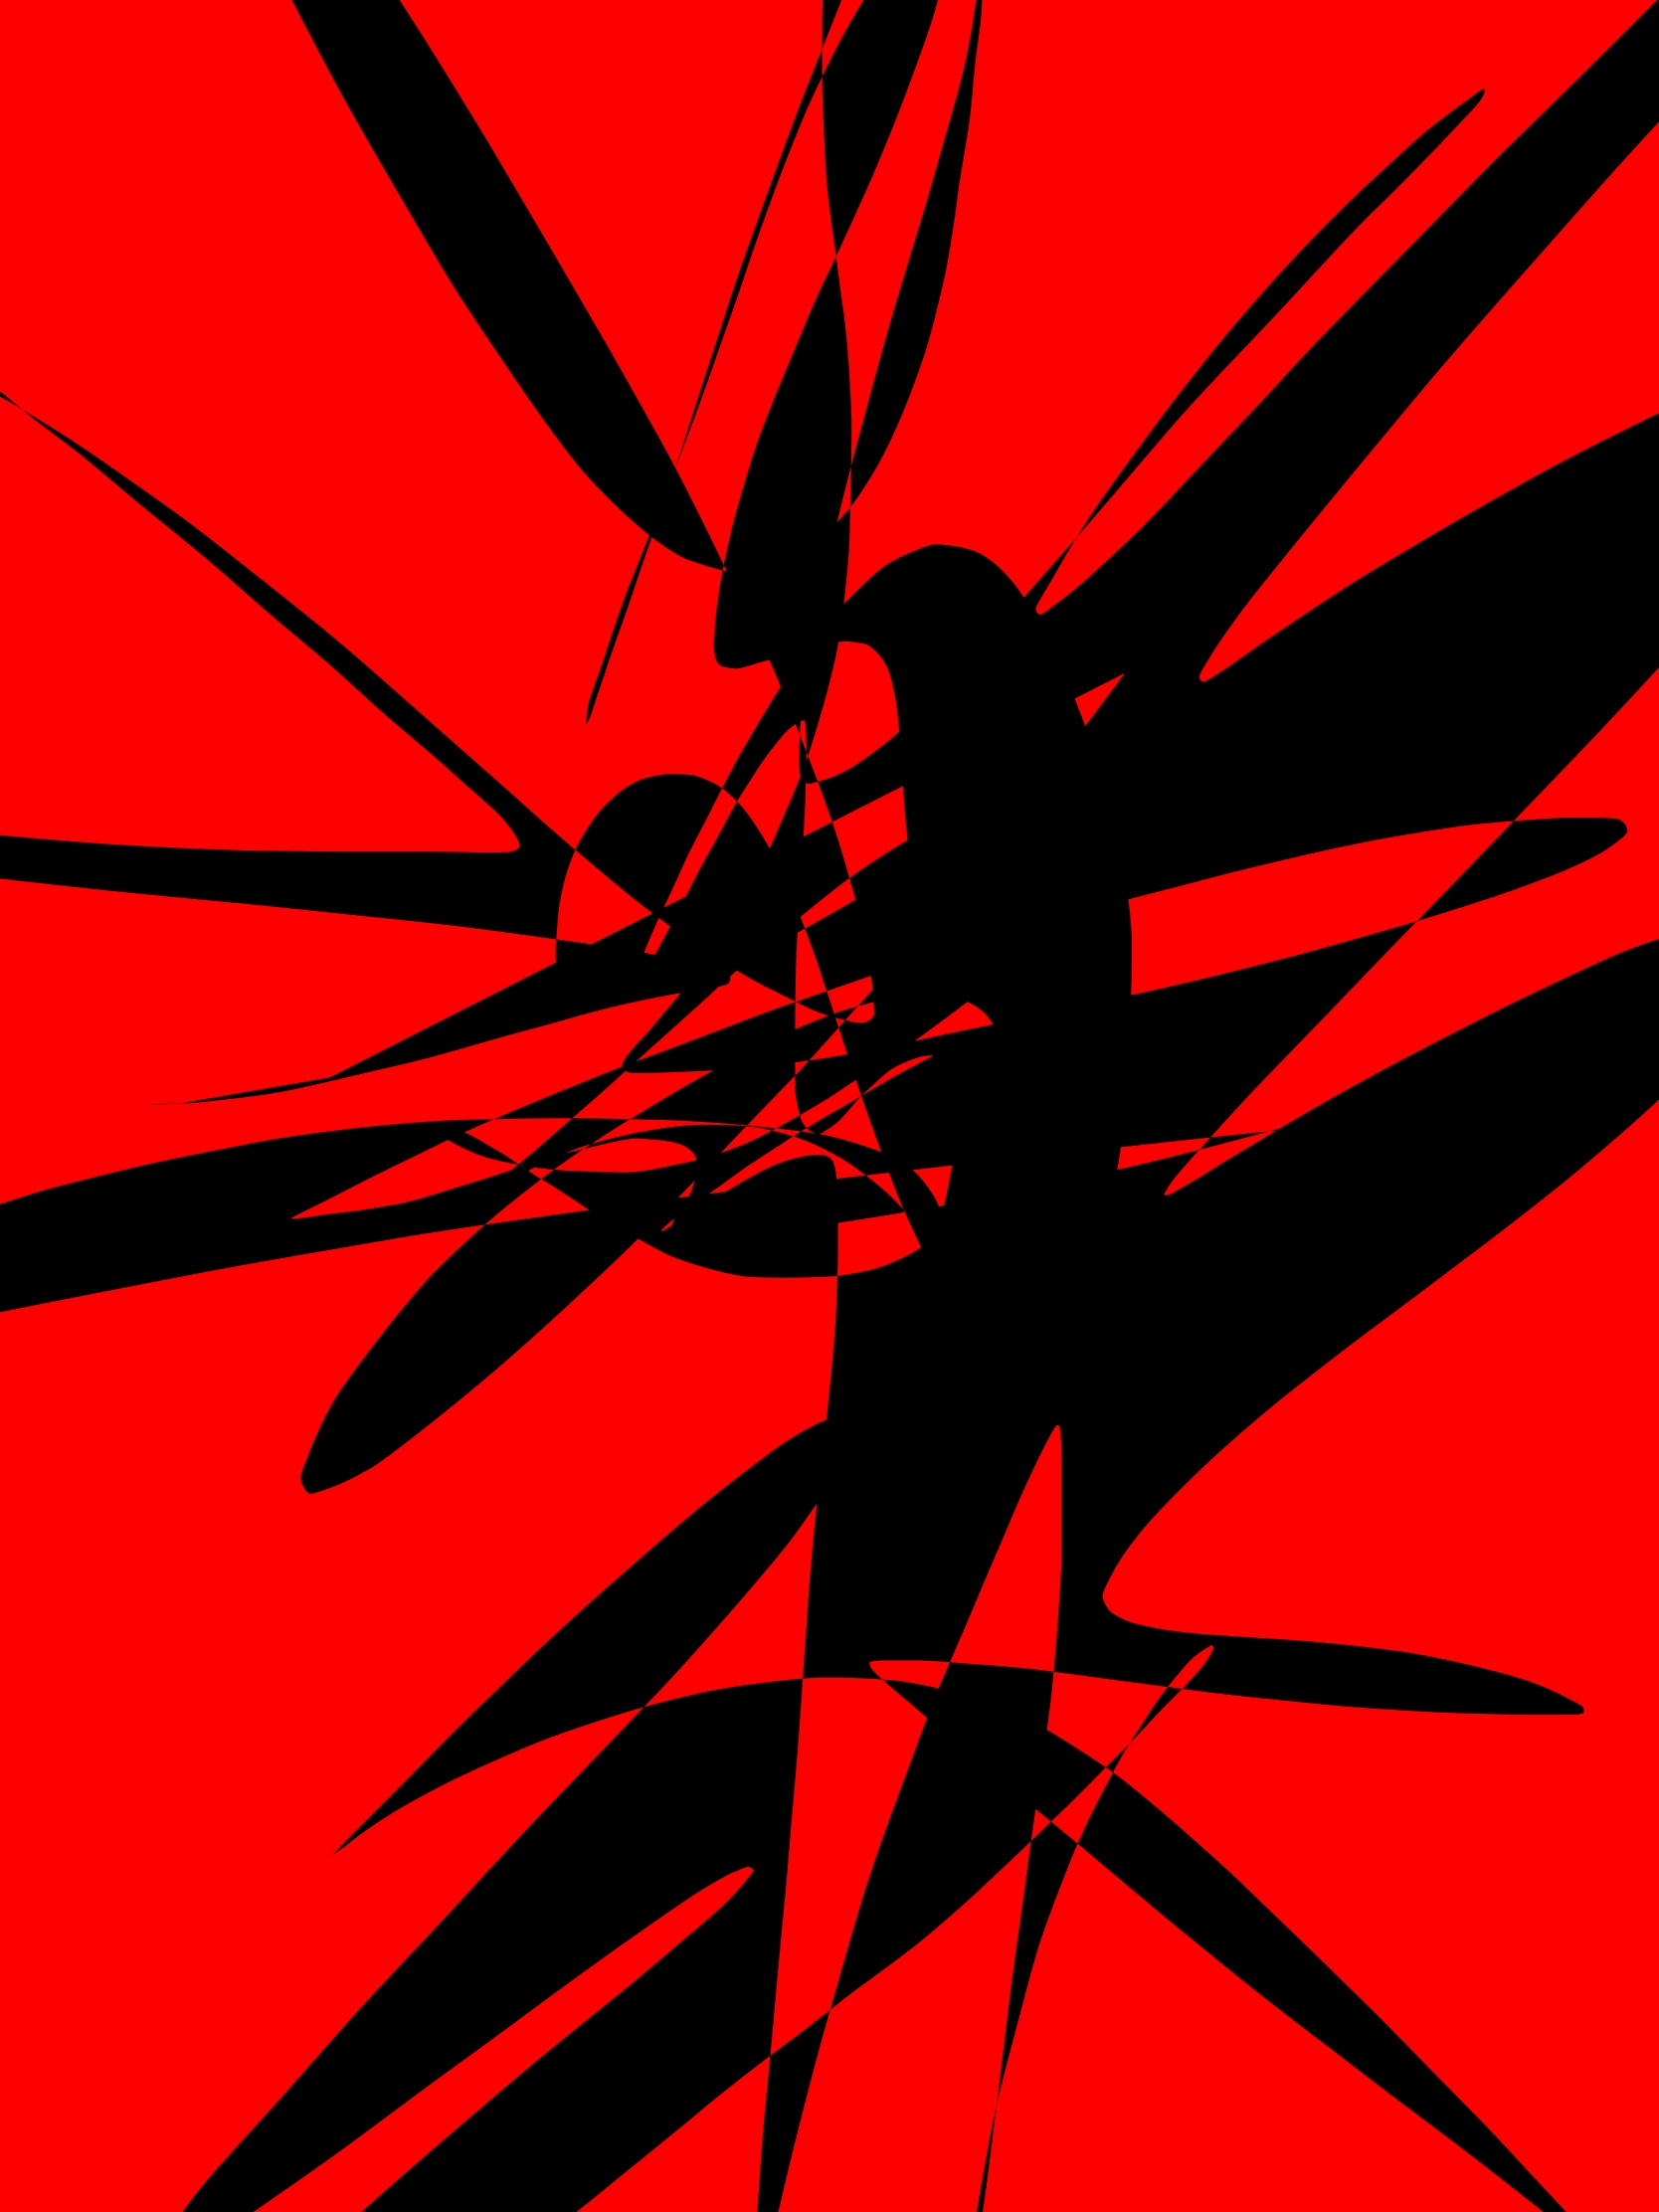 Red black abstract